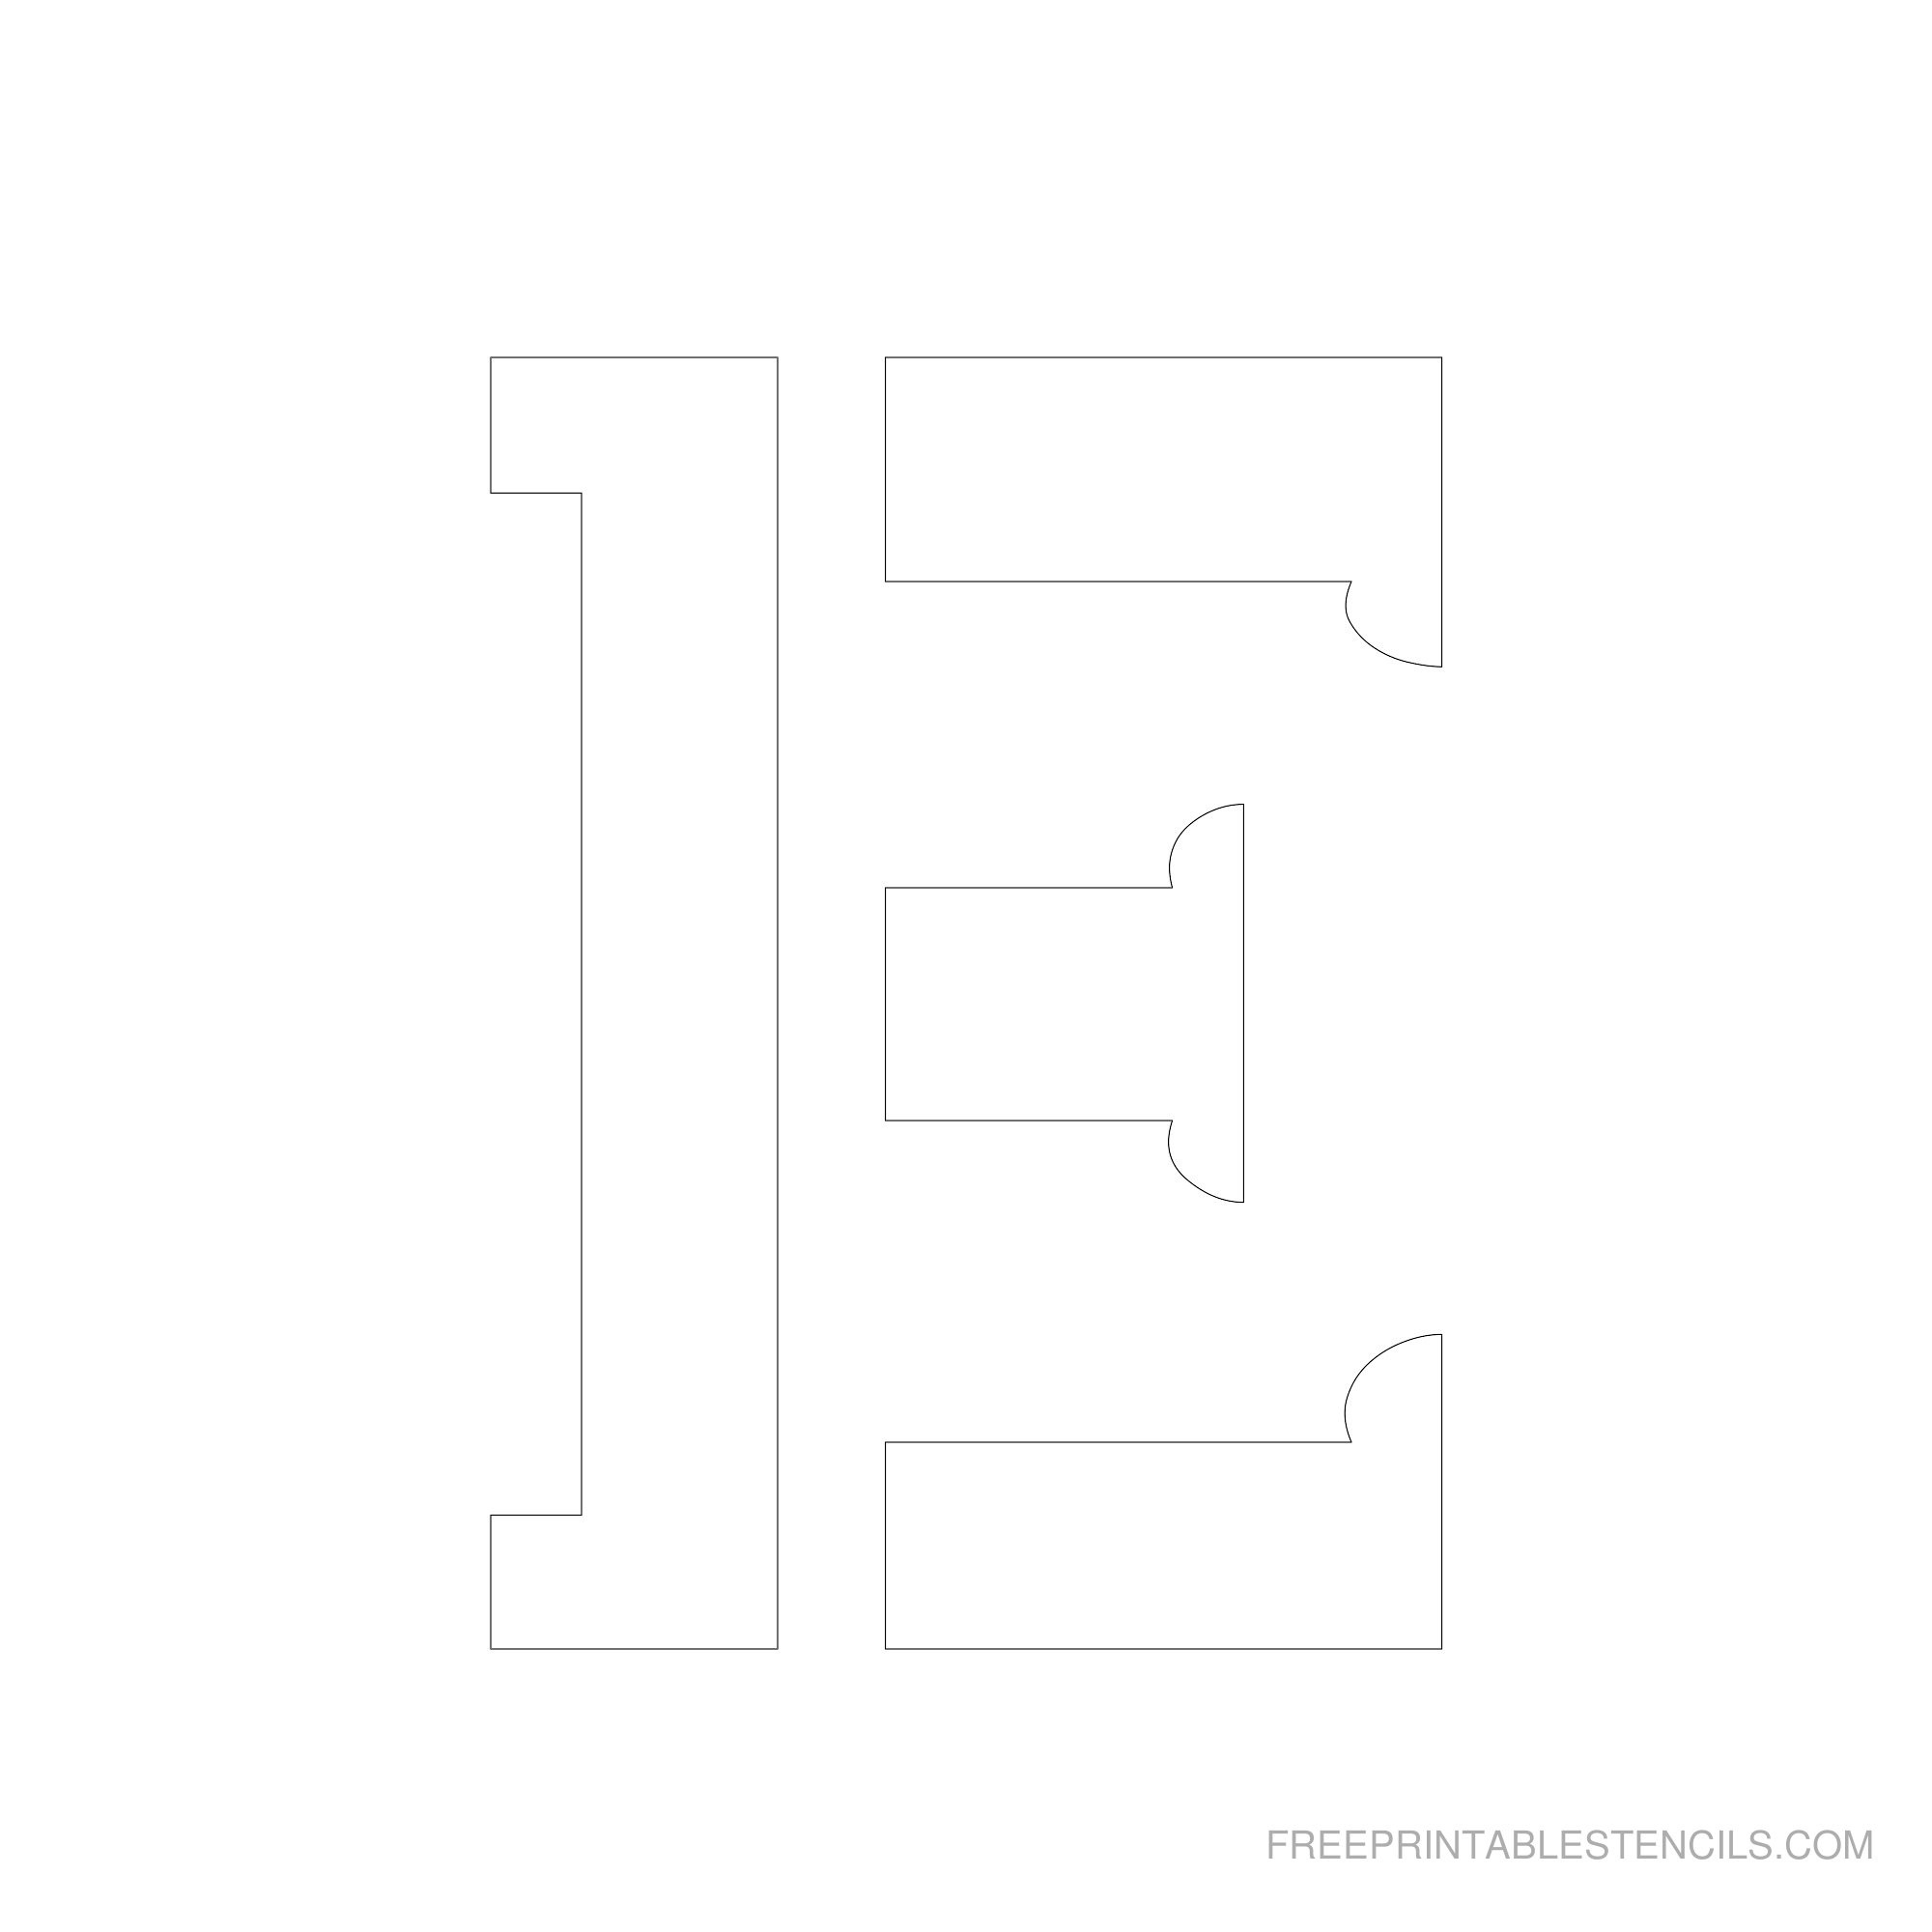 Letter Stencils To Print | Free Printable Stencils - Free Printable 10 Inch Letter Stencils